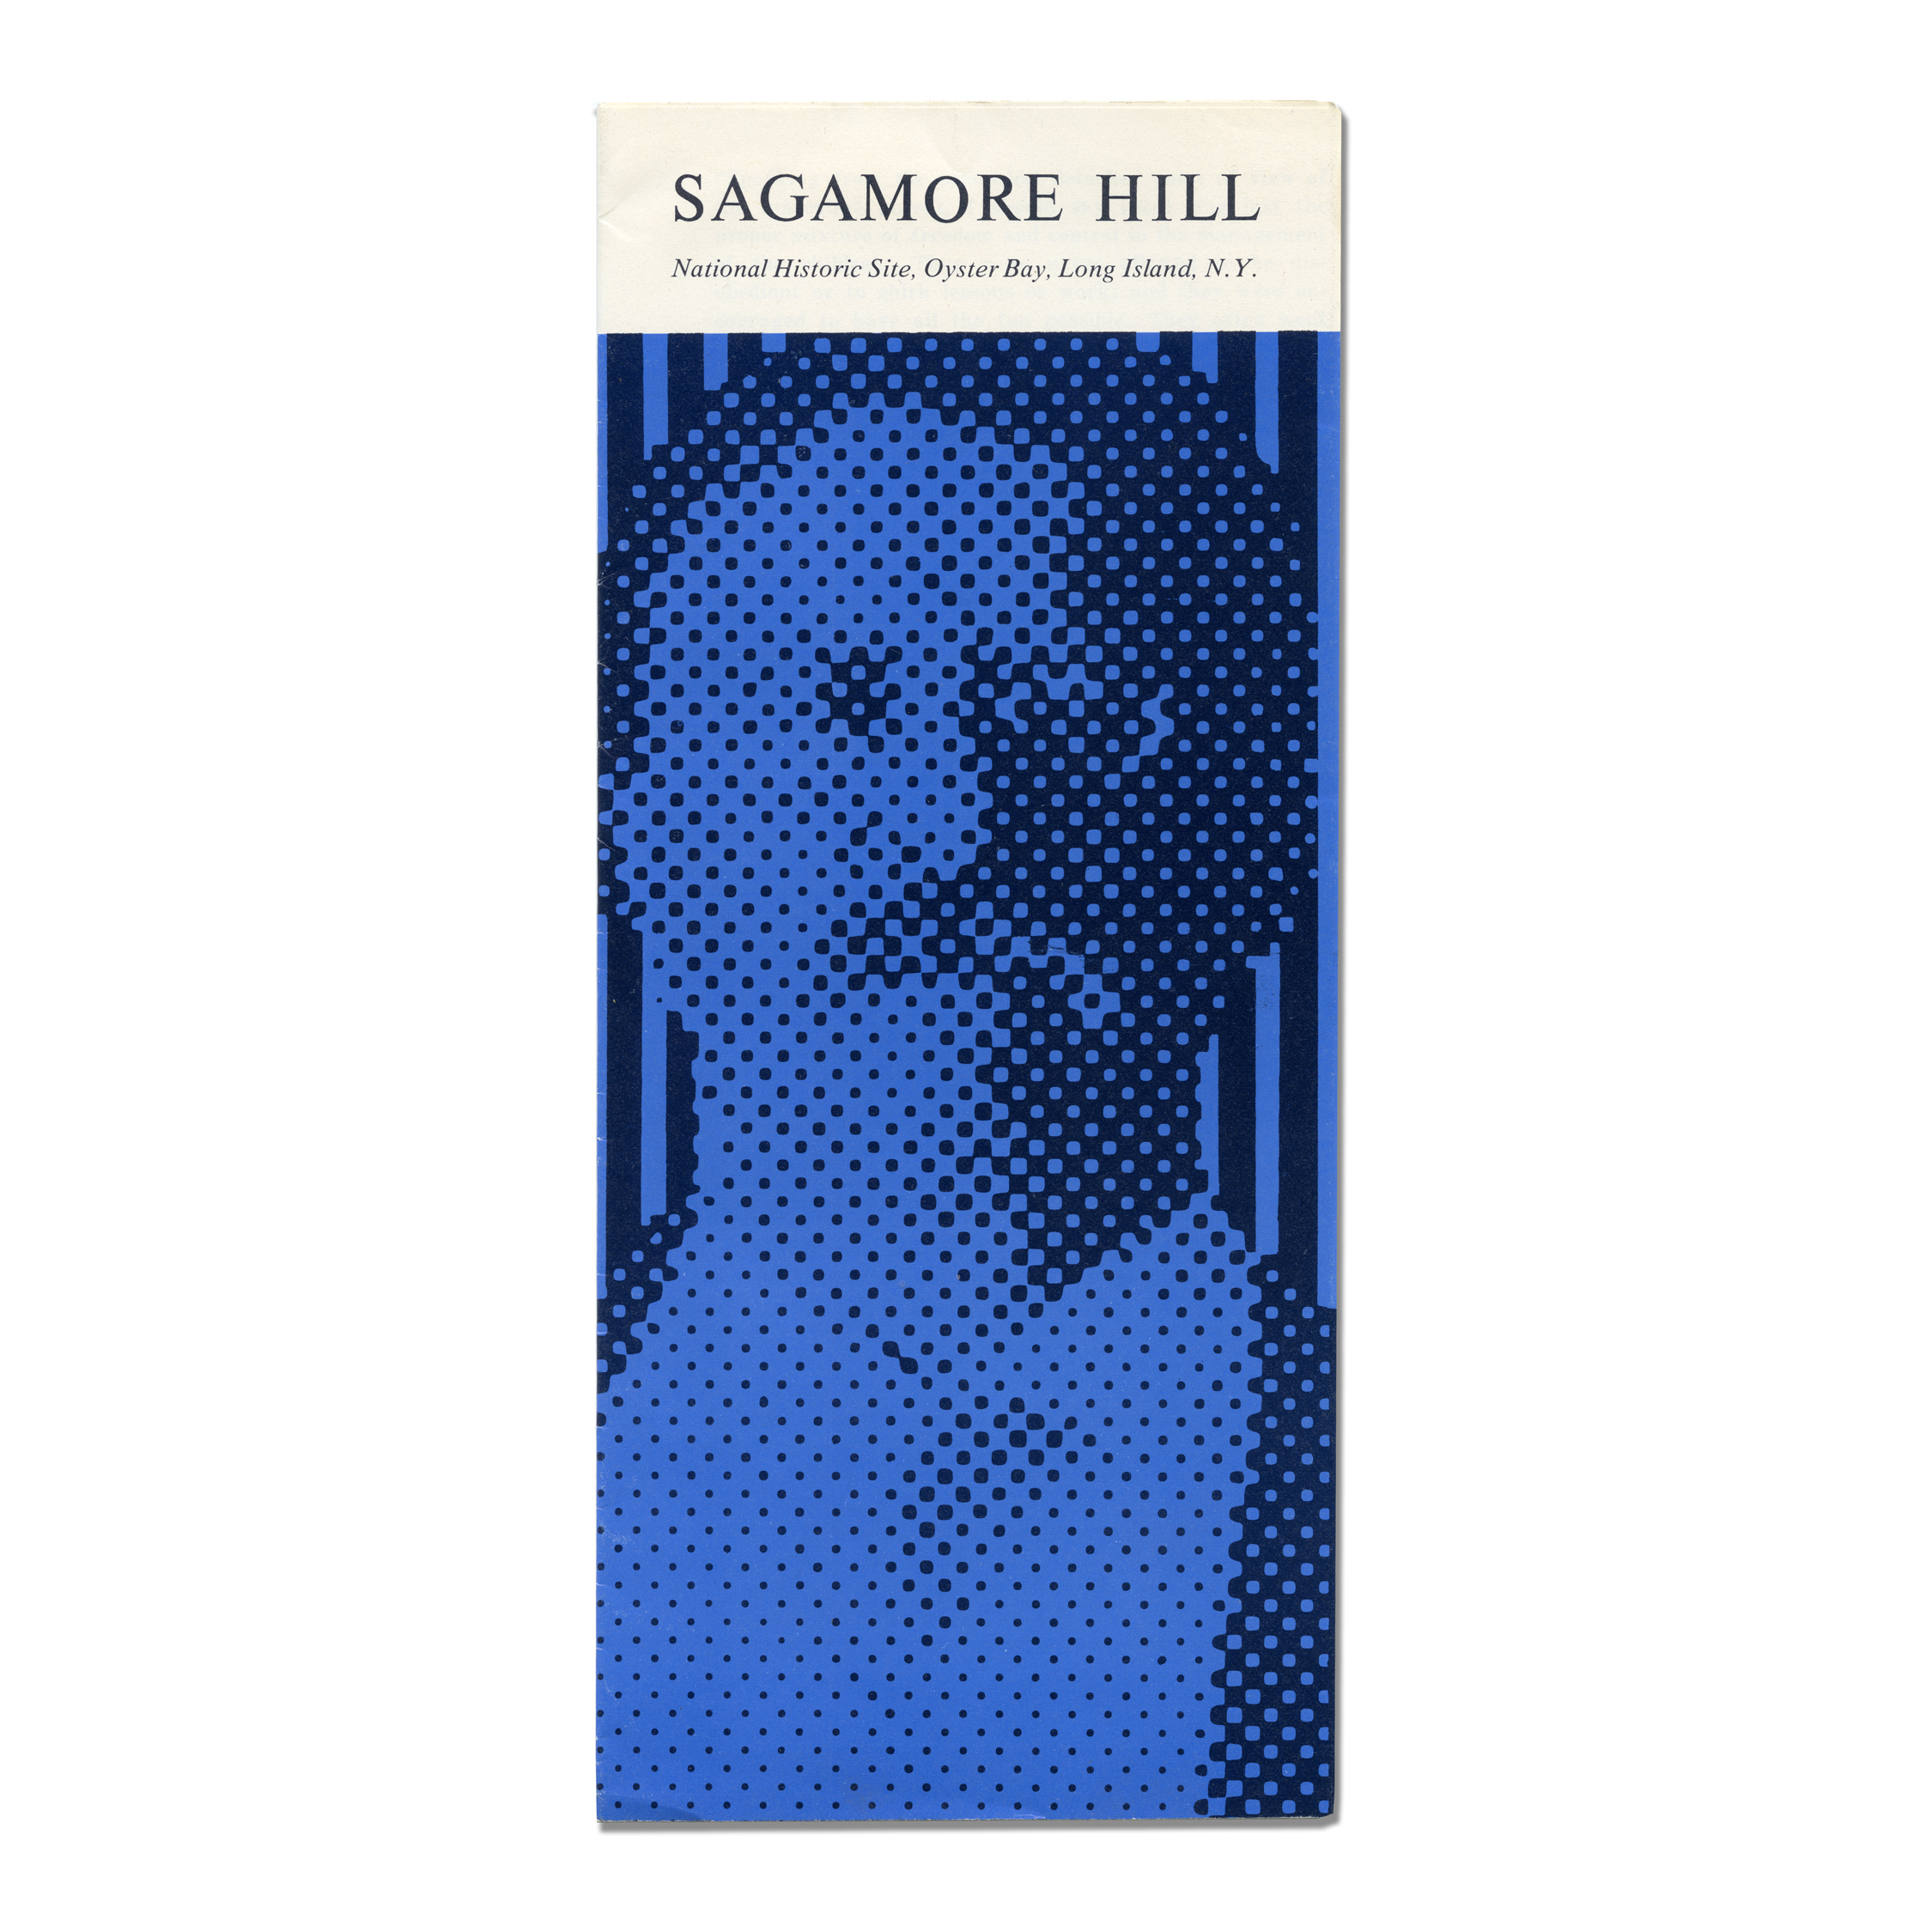 1967_sagamore_hill_national_historic_site_brochure.jpg